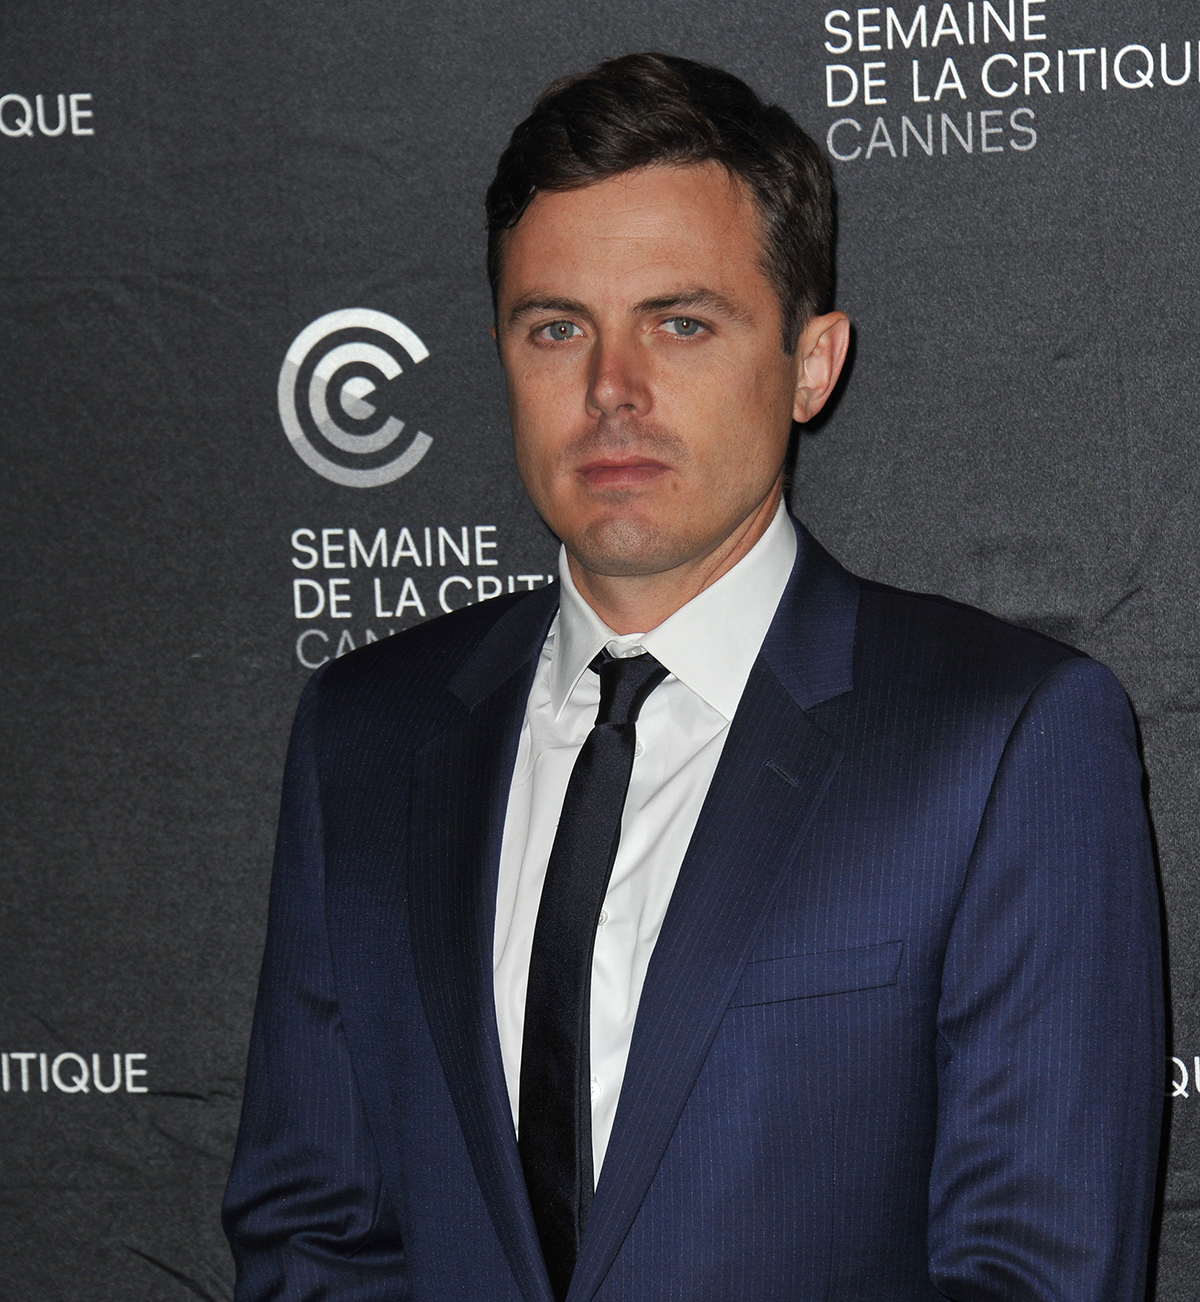 Casey Affleck Image via Featureflash / Shutterstock.com